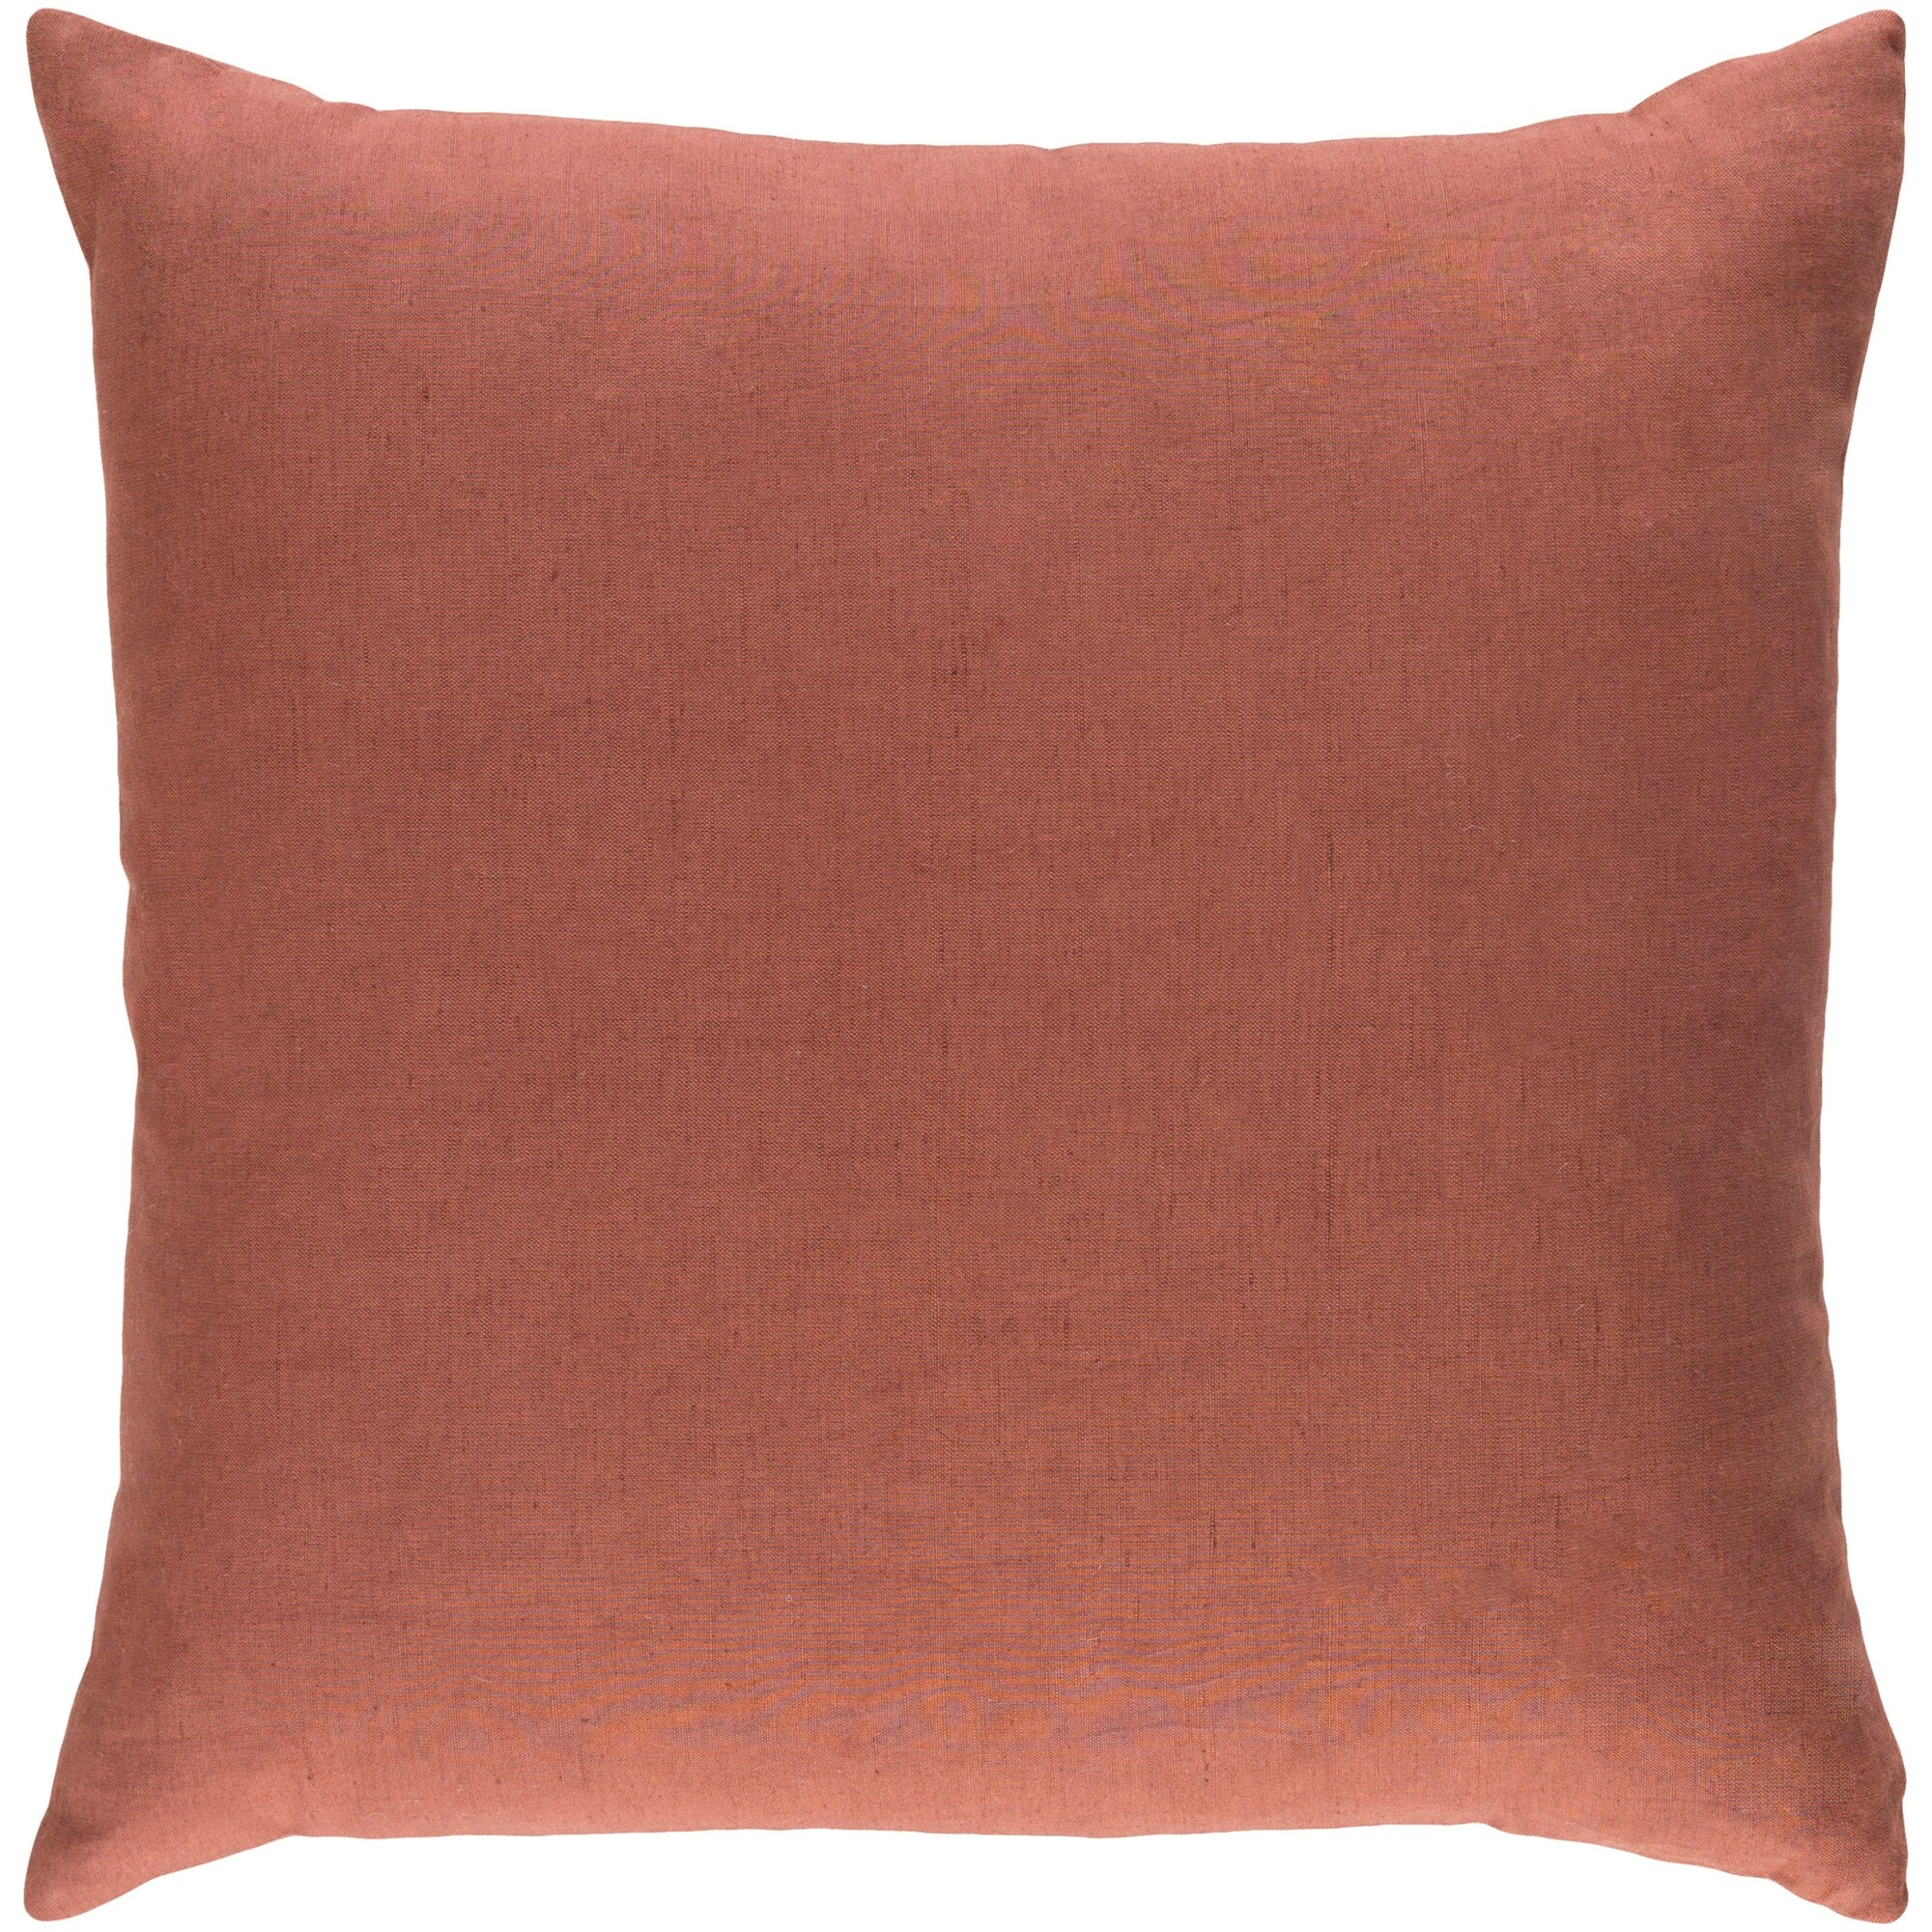 Decorative Villa Rust 18 Inch Throw Pillow Cover Overstock 23143609